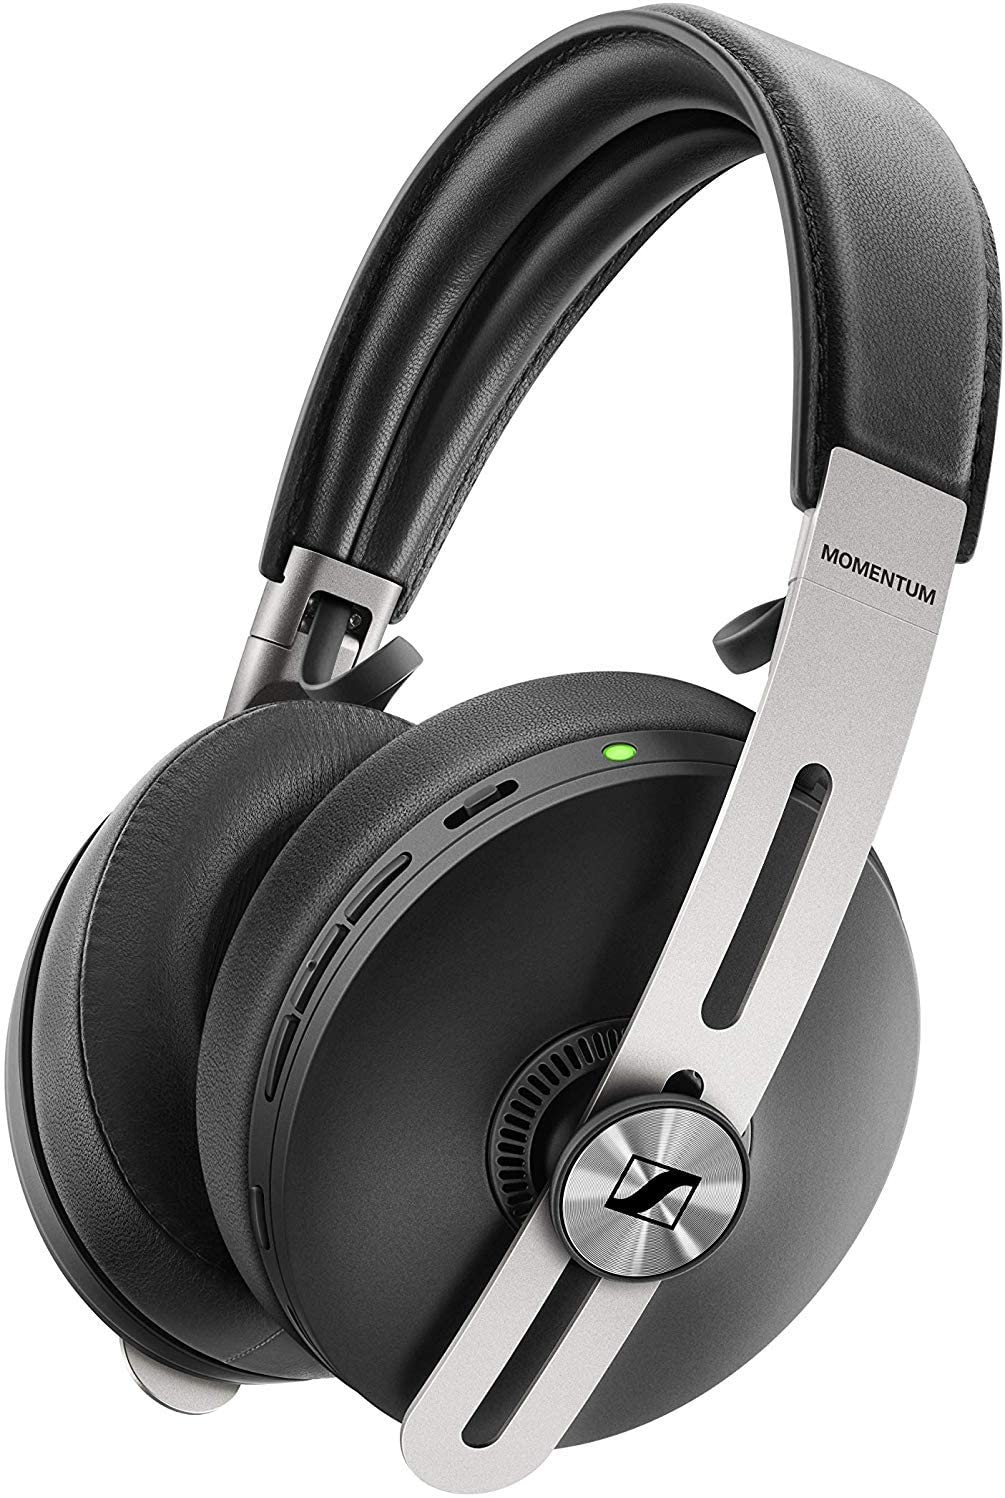 sennheiser momentum, headphone, koptelefoons, active noise cancelling, amazon prime days